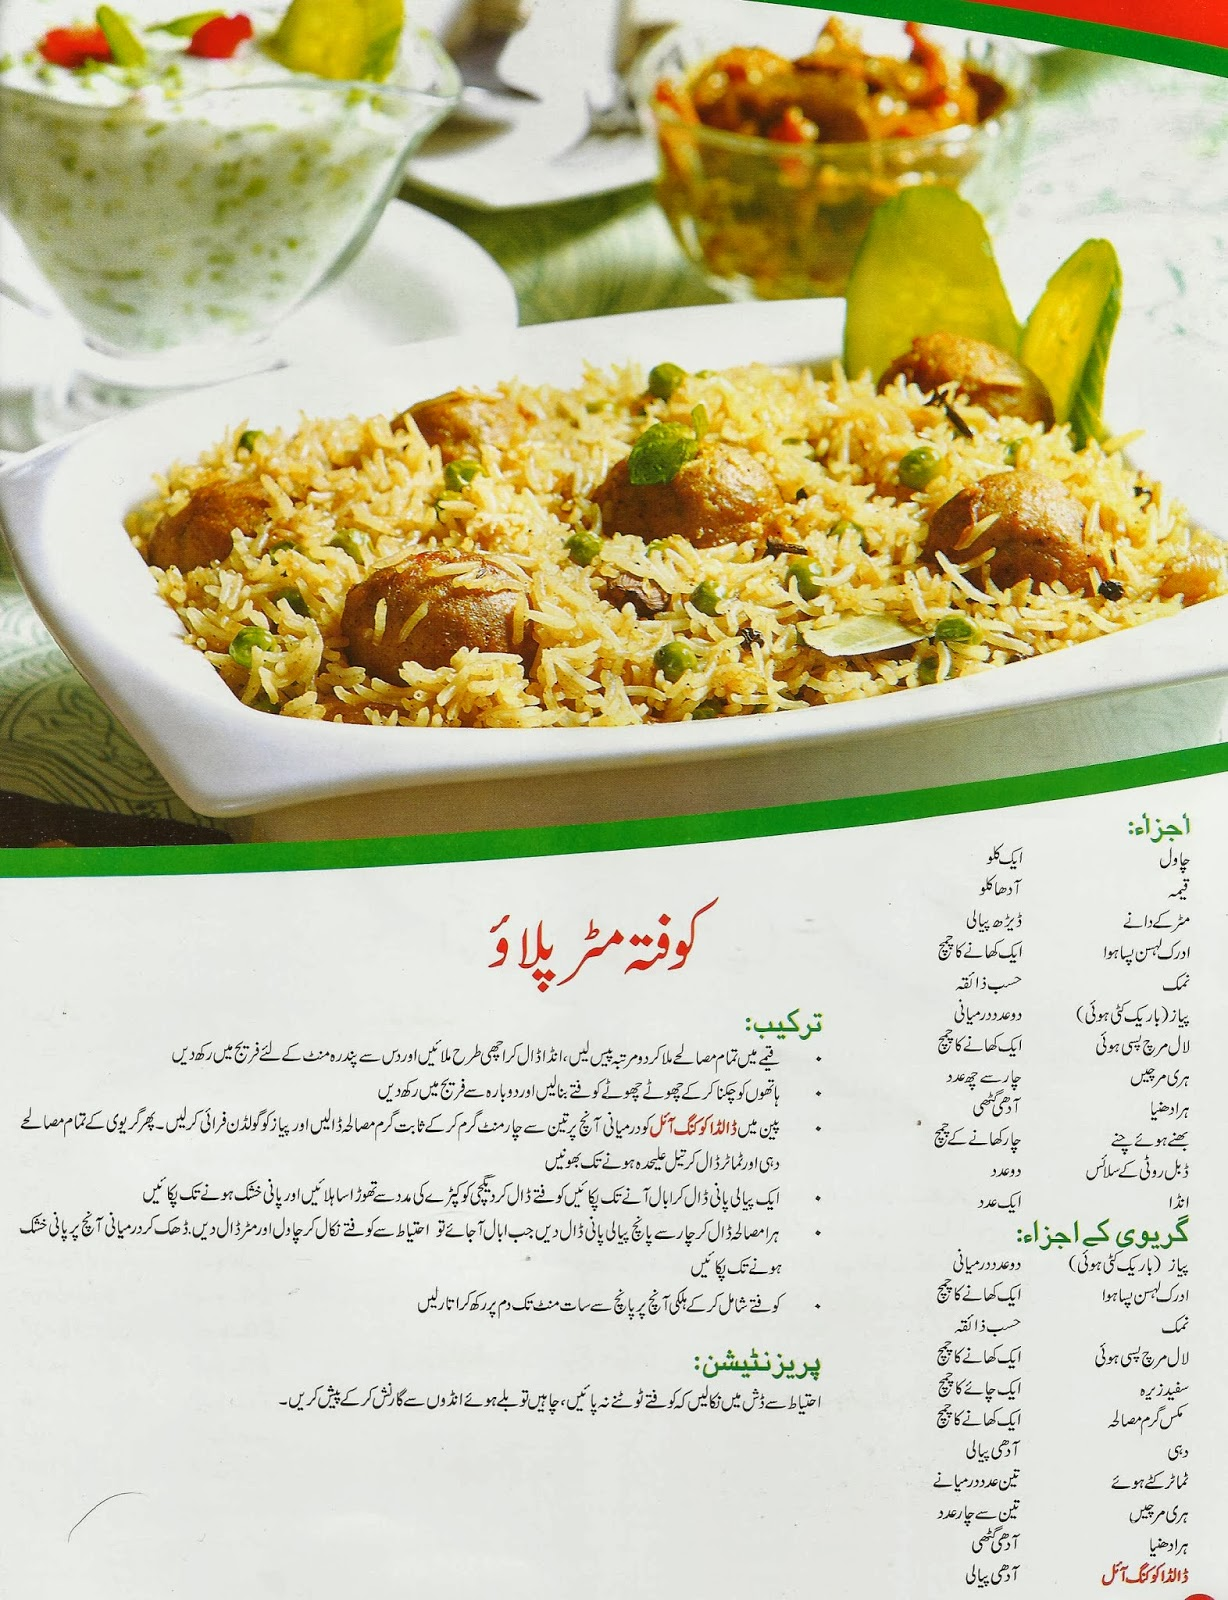 A New Pakistani Cooking Dish Kofta Matar Pulao Recipe In Urdu